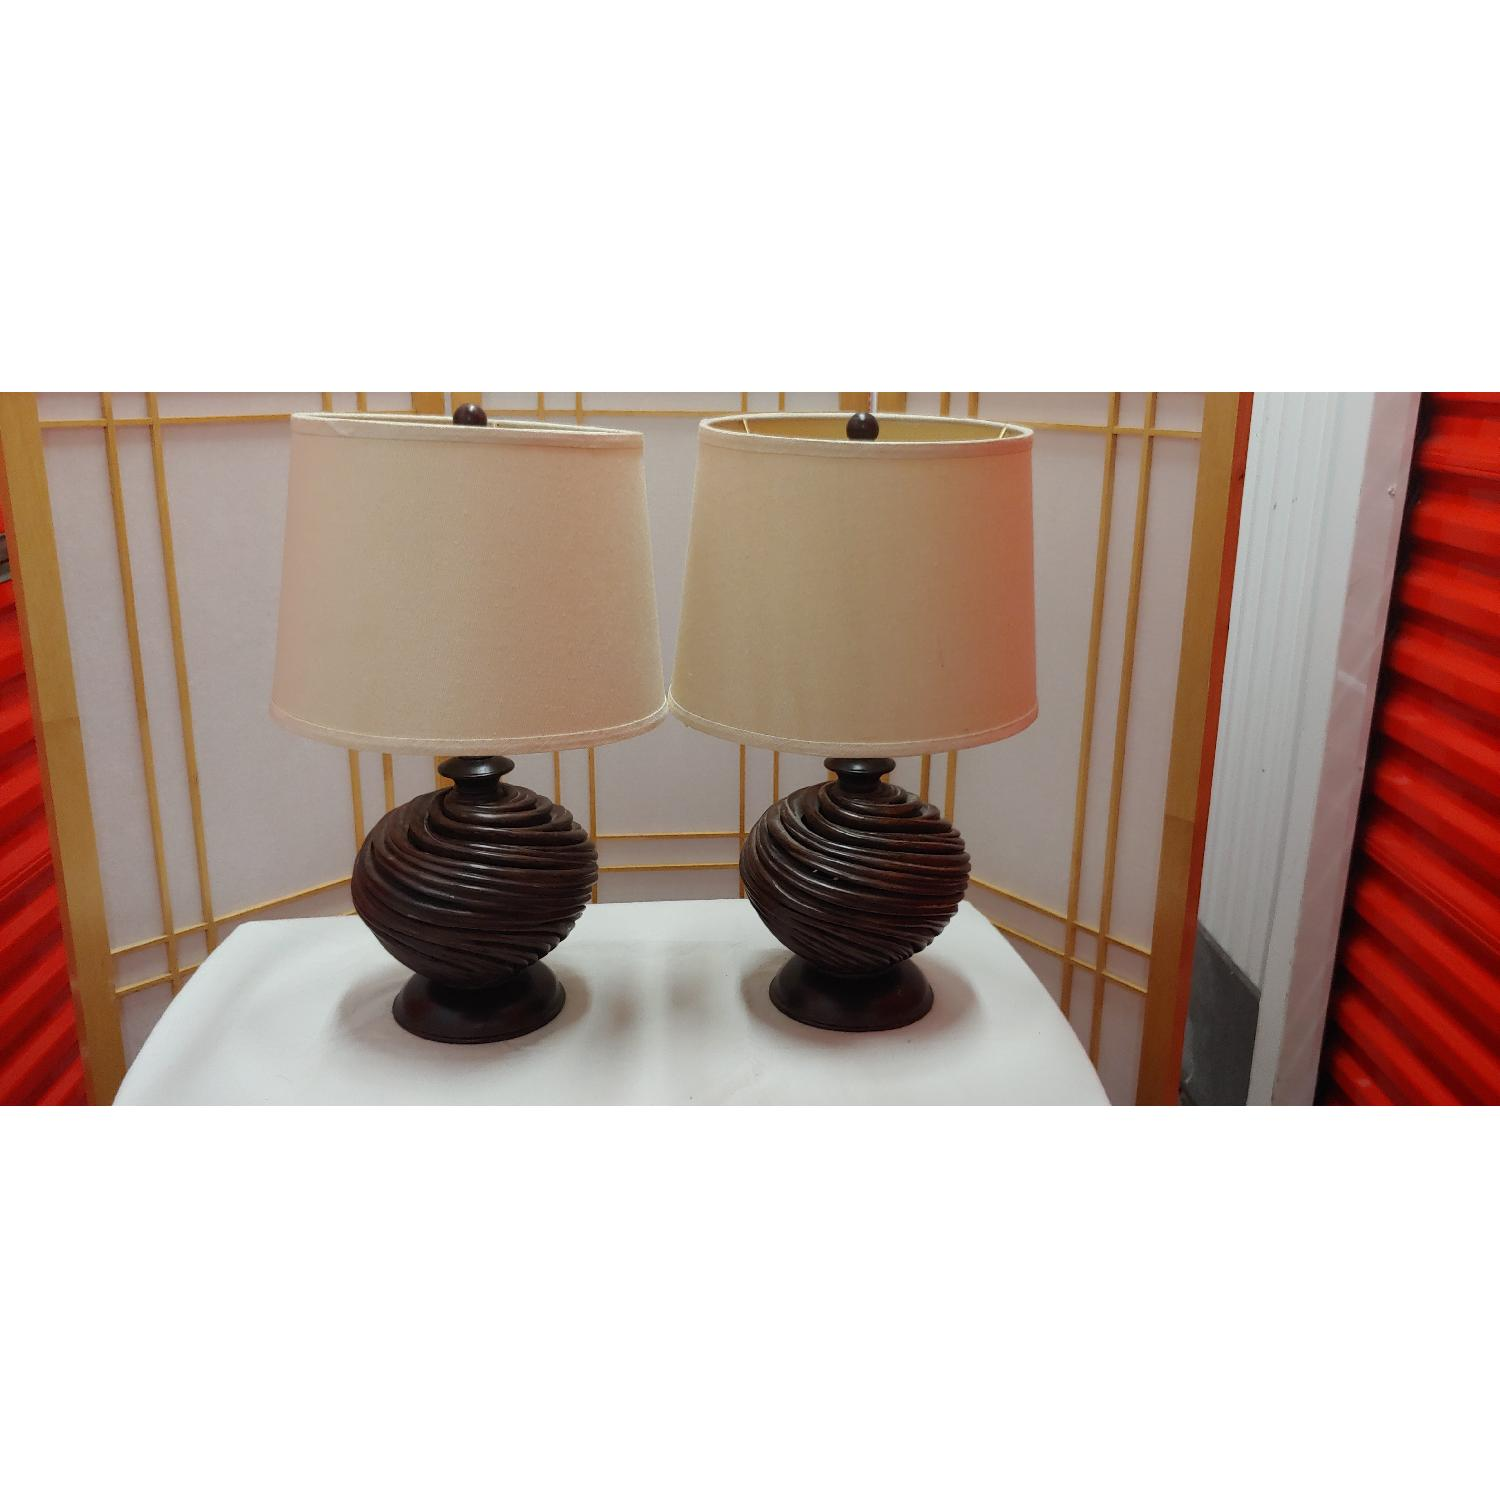 Brown Table Lamps - image-3